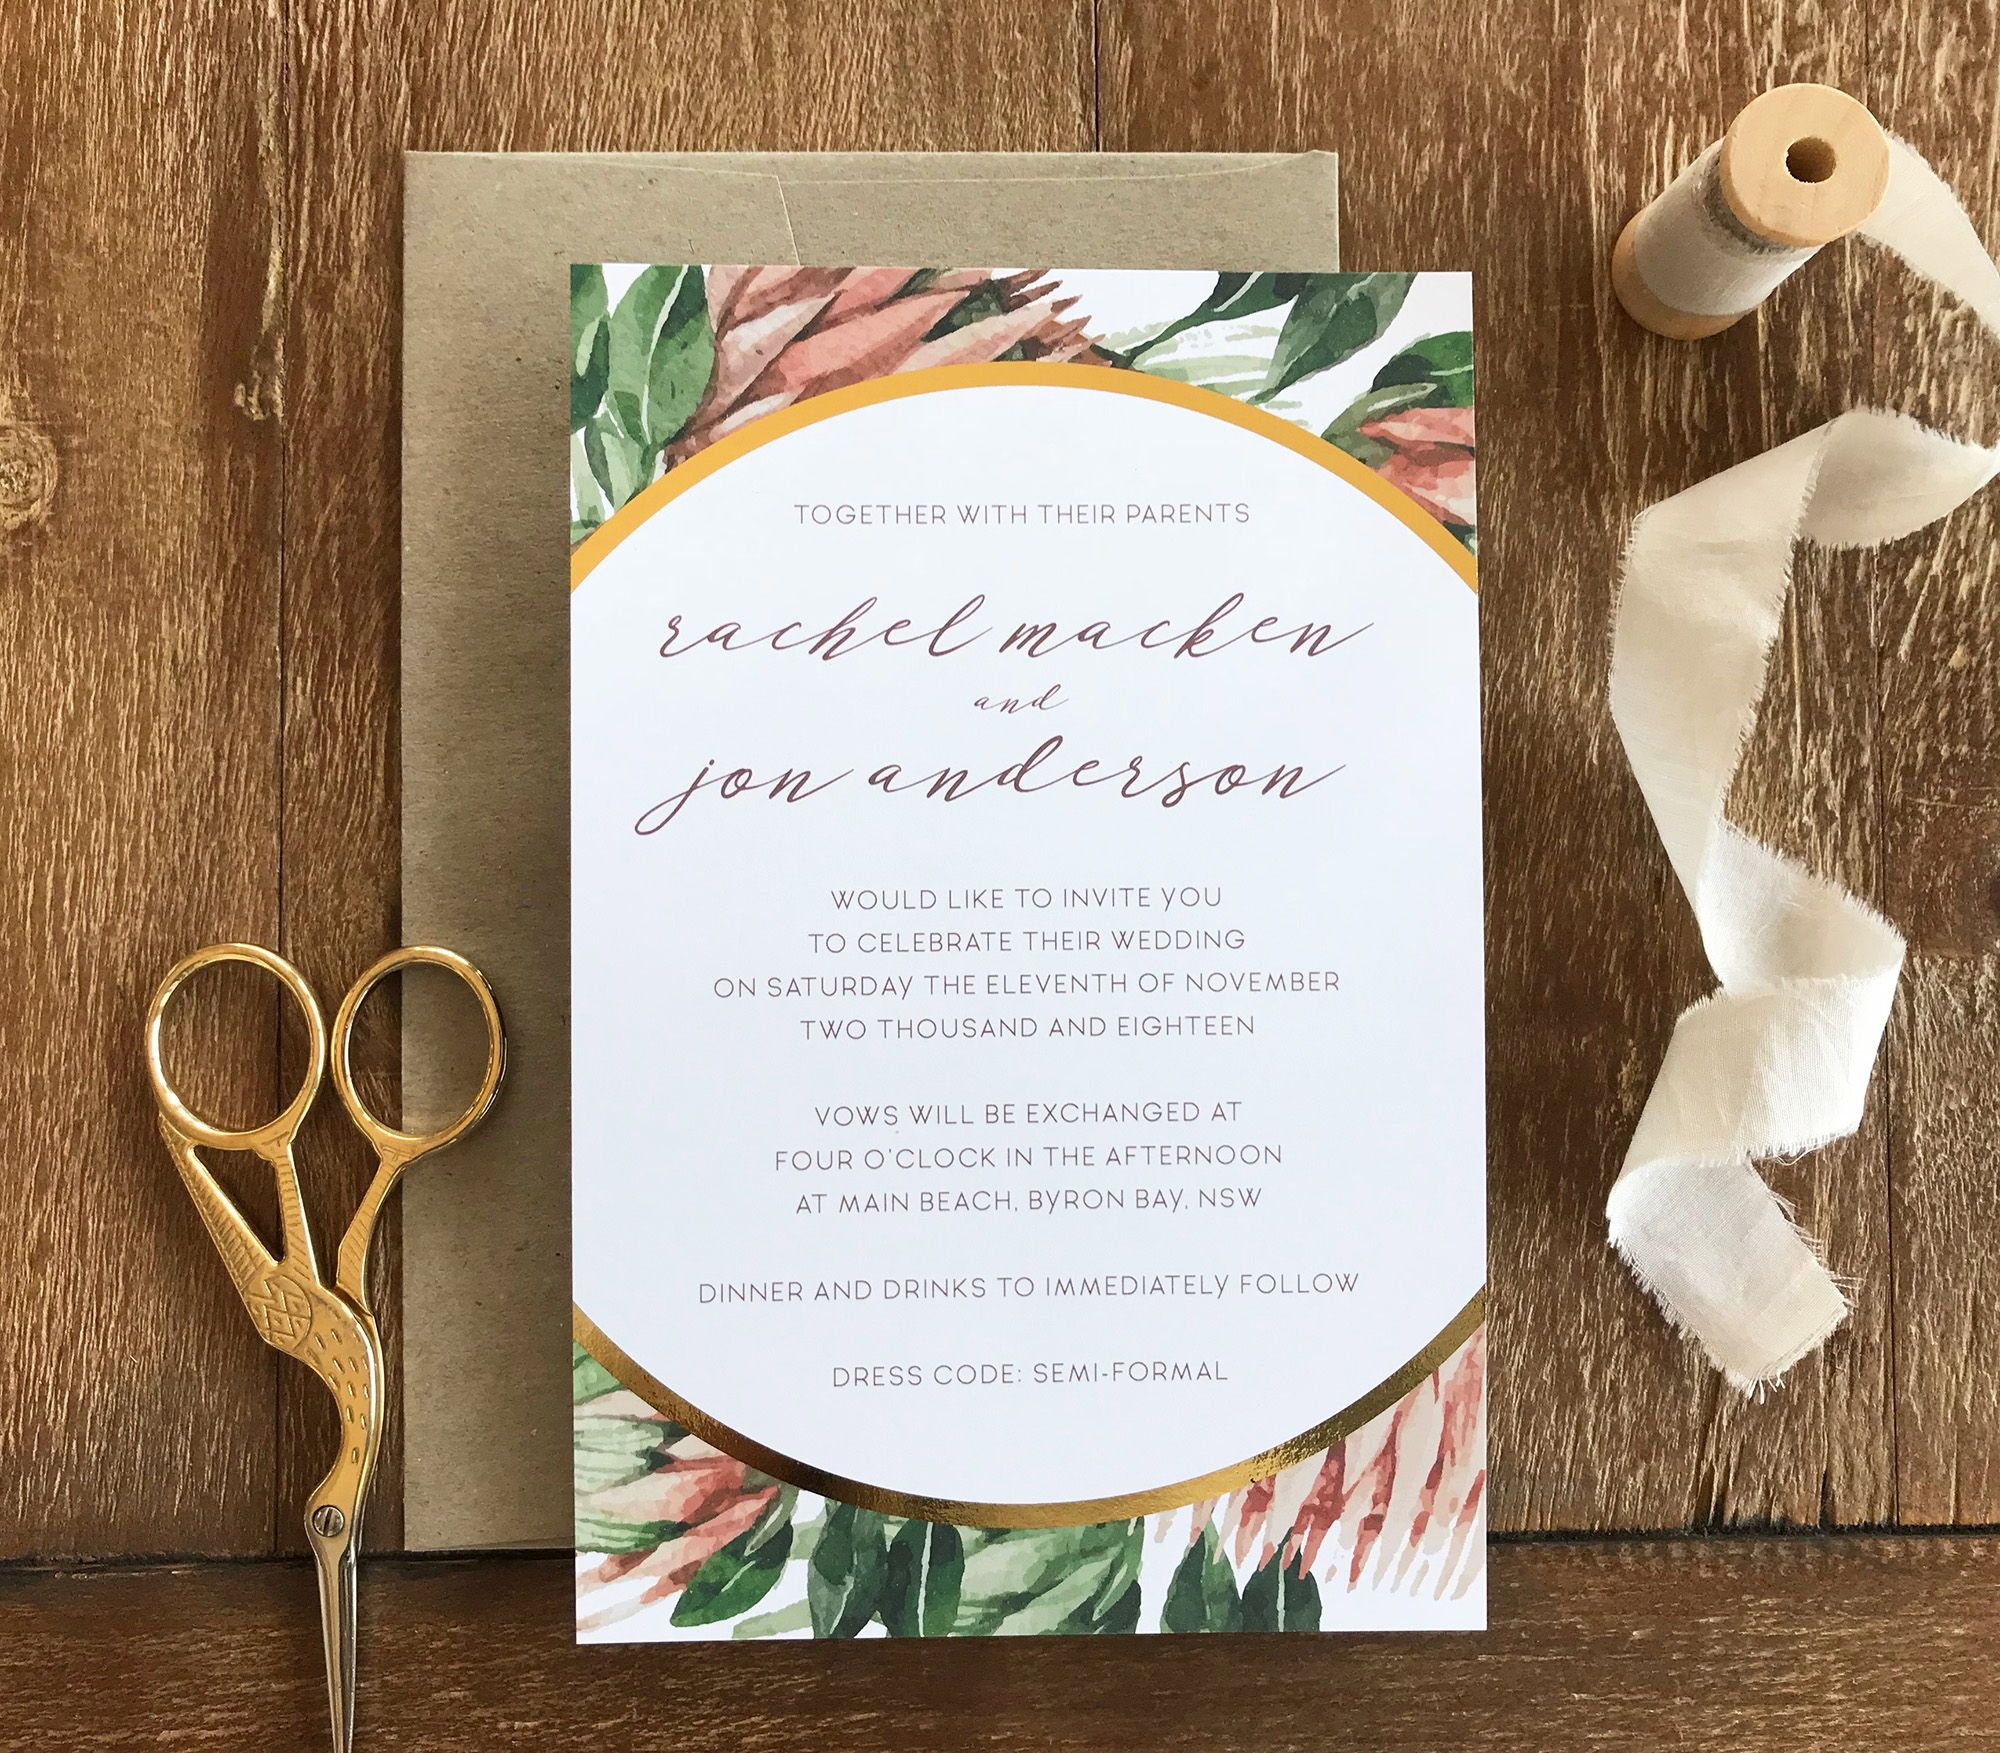 Our Protea Wedding Invitation Featuring Gold Foil And Paired With A Brown Kraft Wedding Invitations Australia Wedding Invitations Custom Wedding Invitations